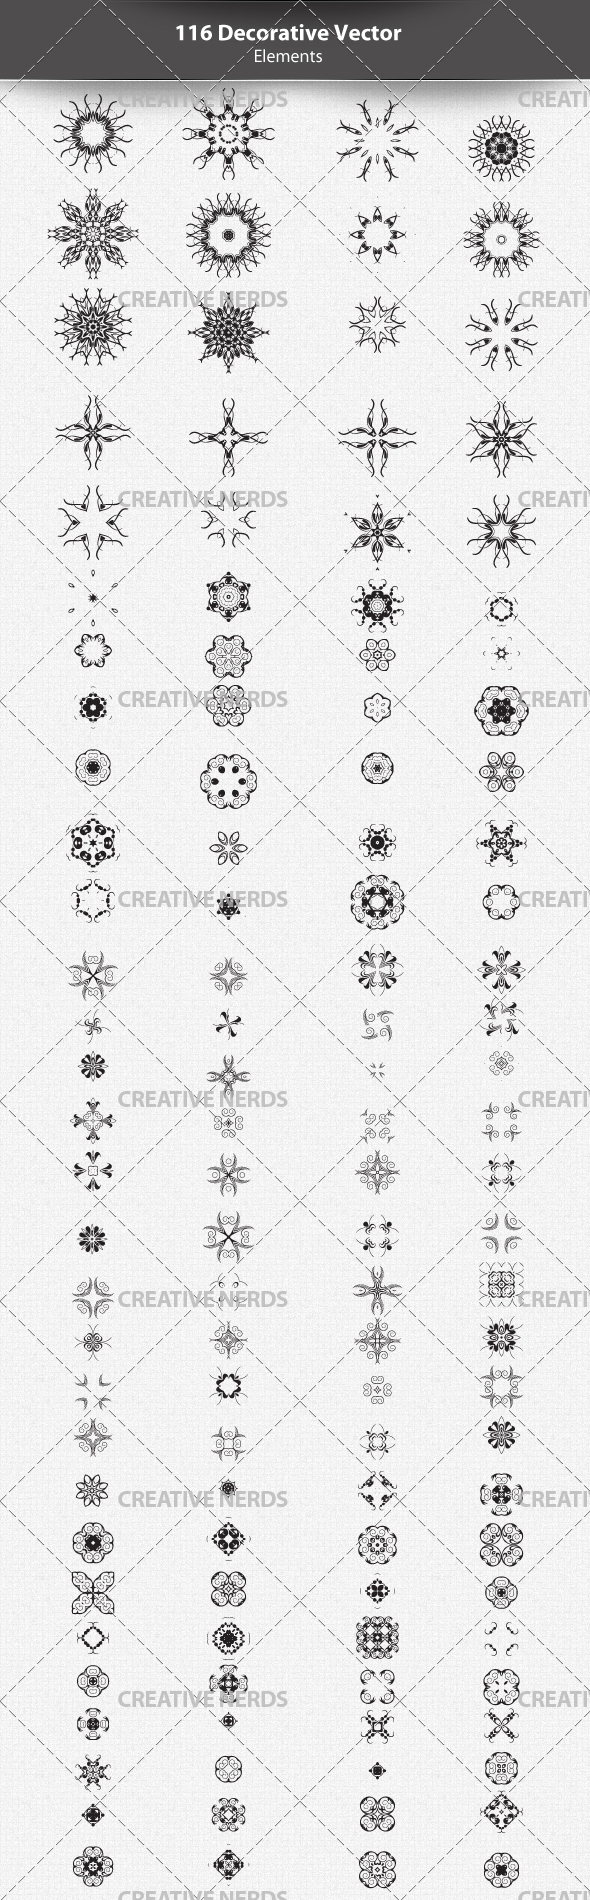 decorative elements preview +115 Abstract Decorative Vector Elements